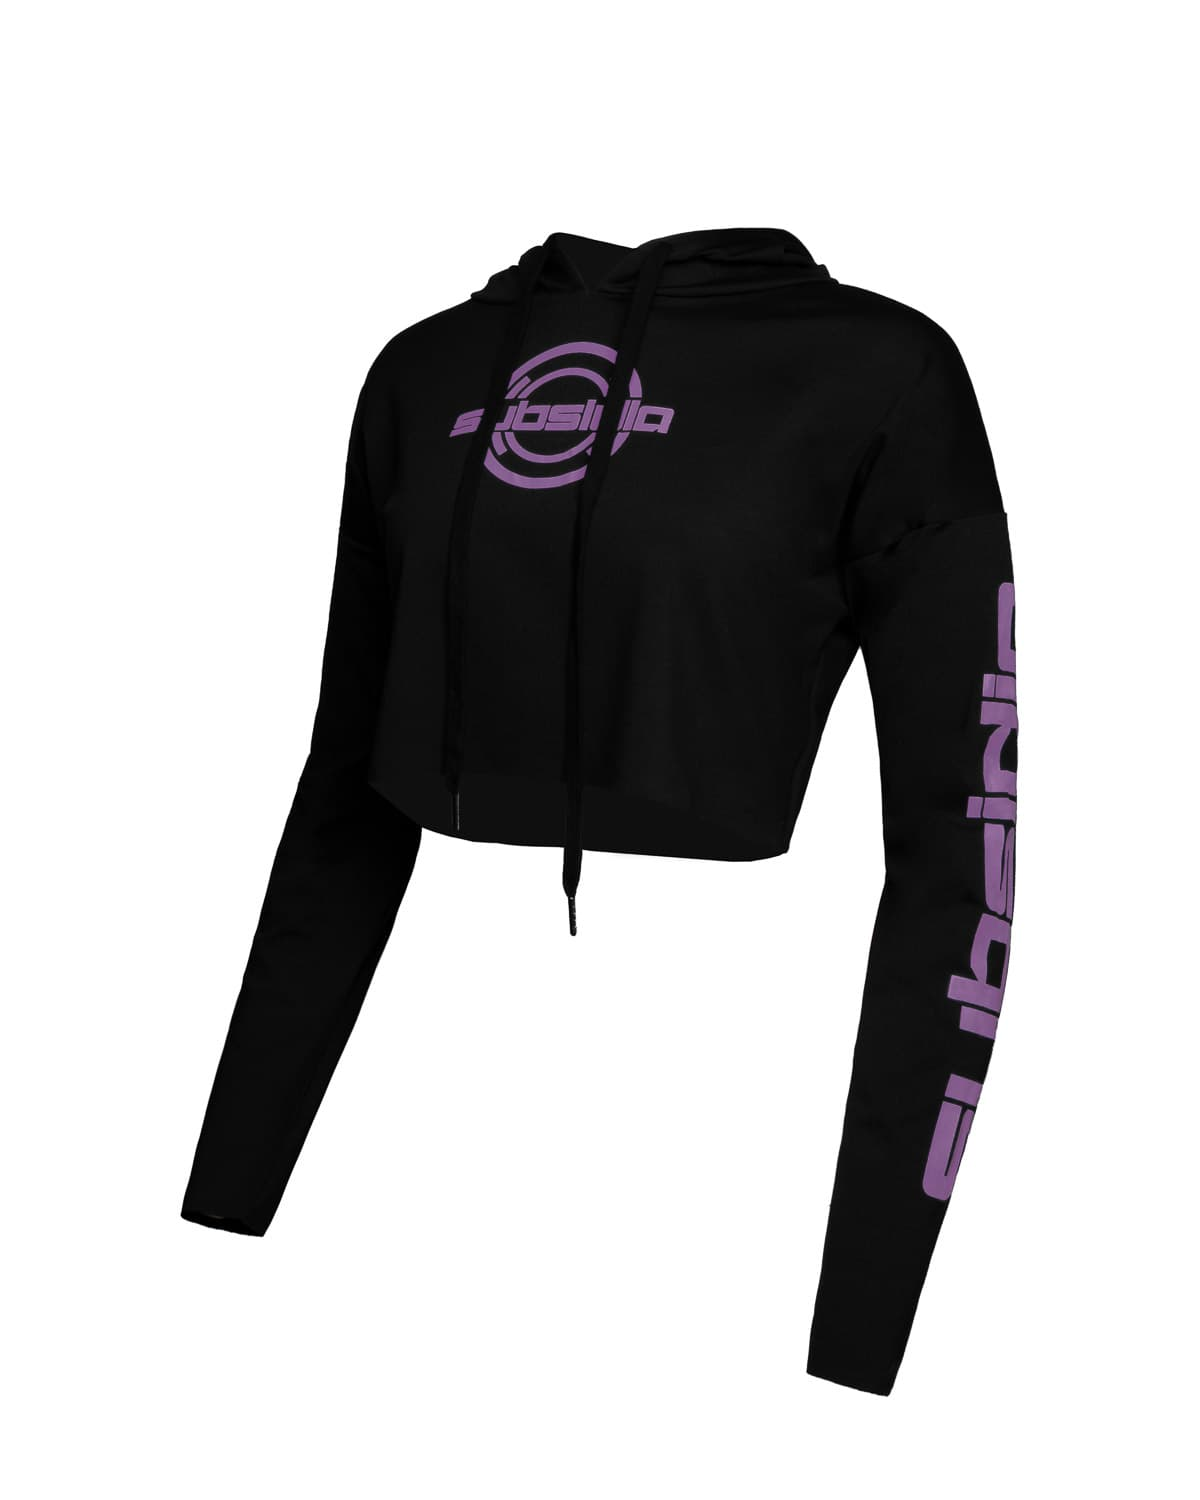 Subsidia Women's Crop Hoodie - Black/Purple